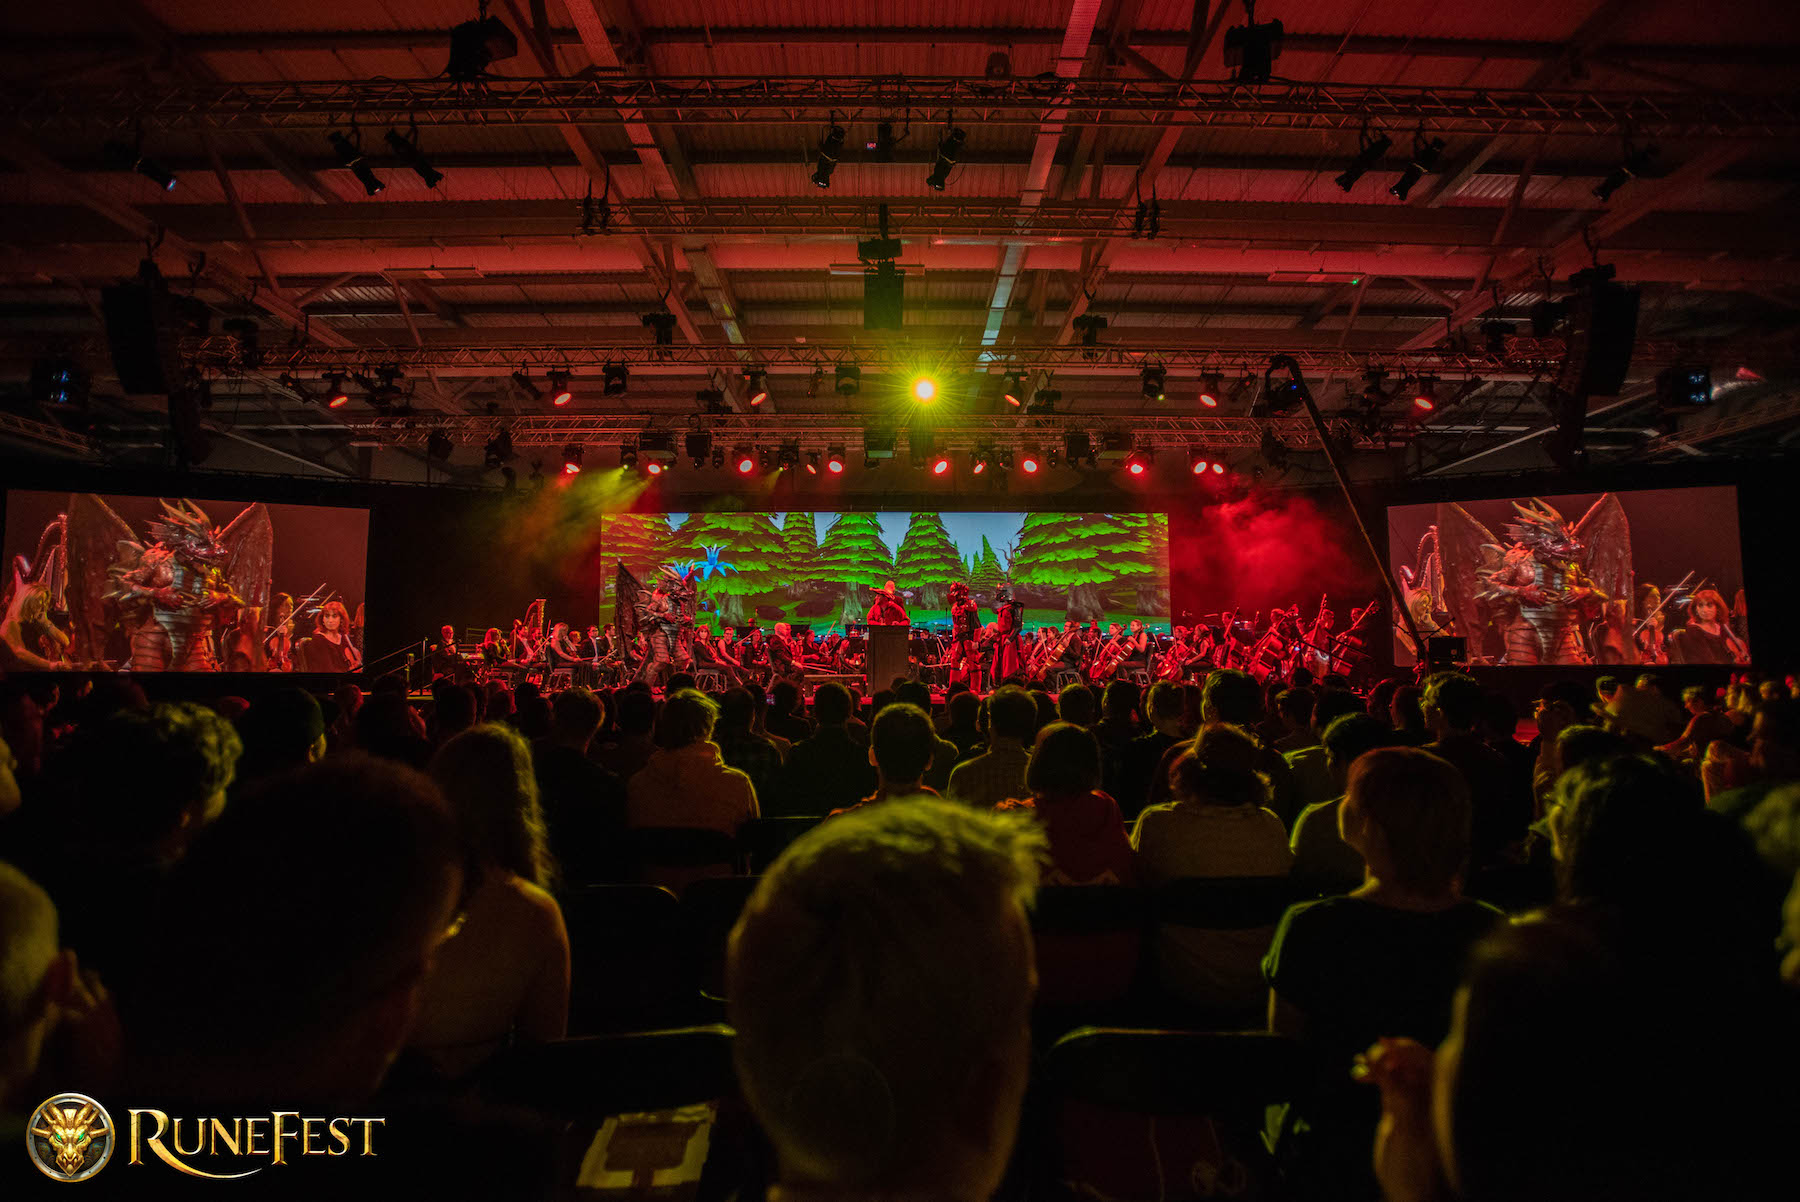 Runefest image - The attendees